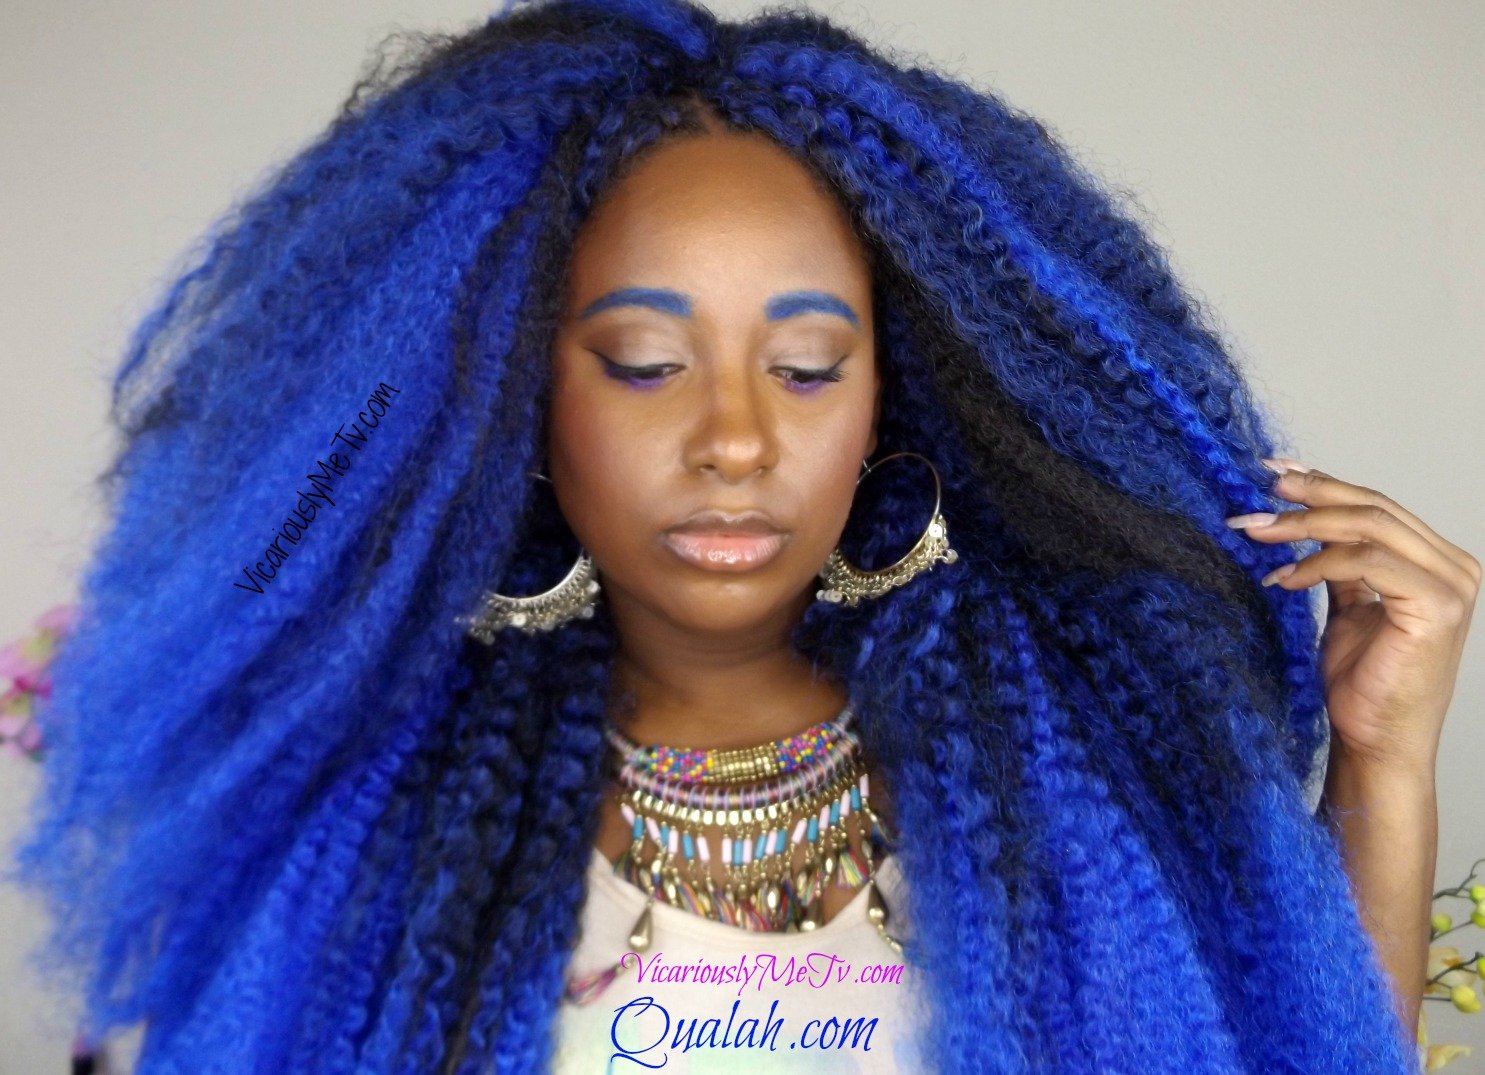 How To Do Crochet Braids Blue Ombre Hair - Vicariously Me Blog ...